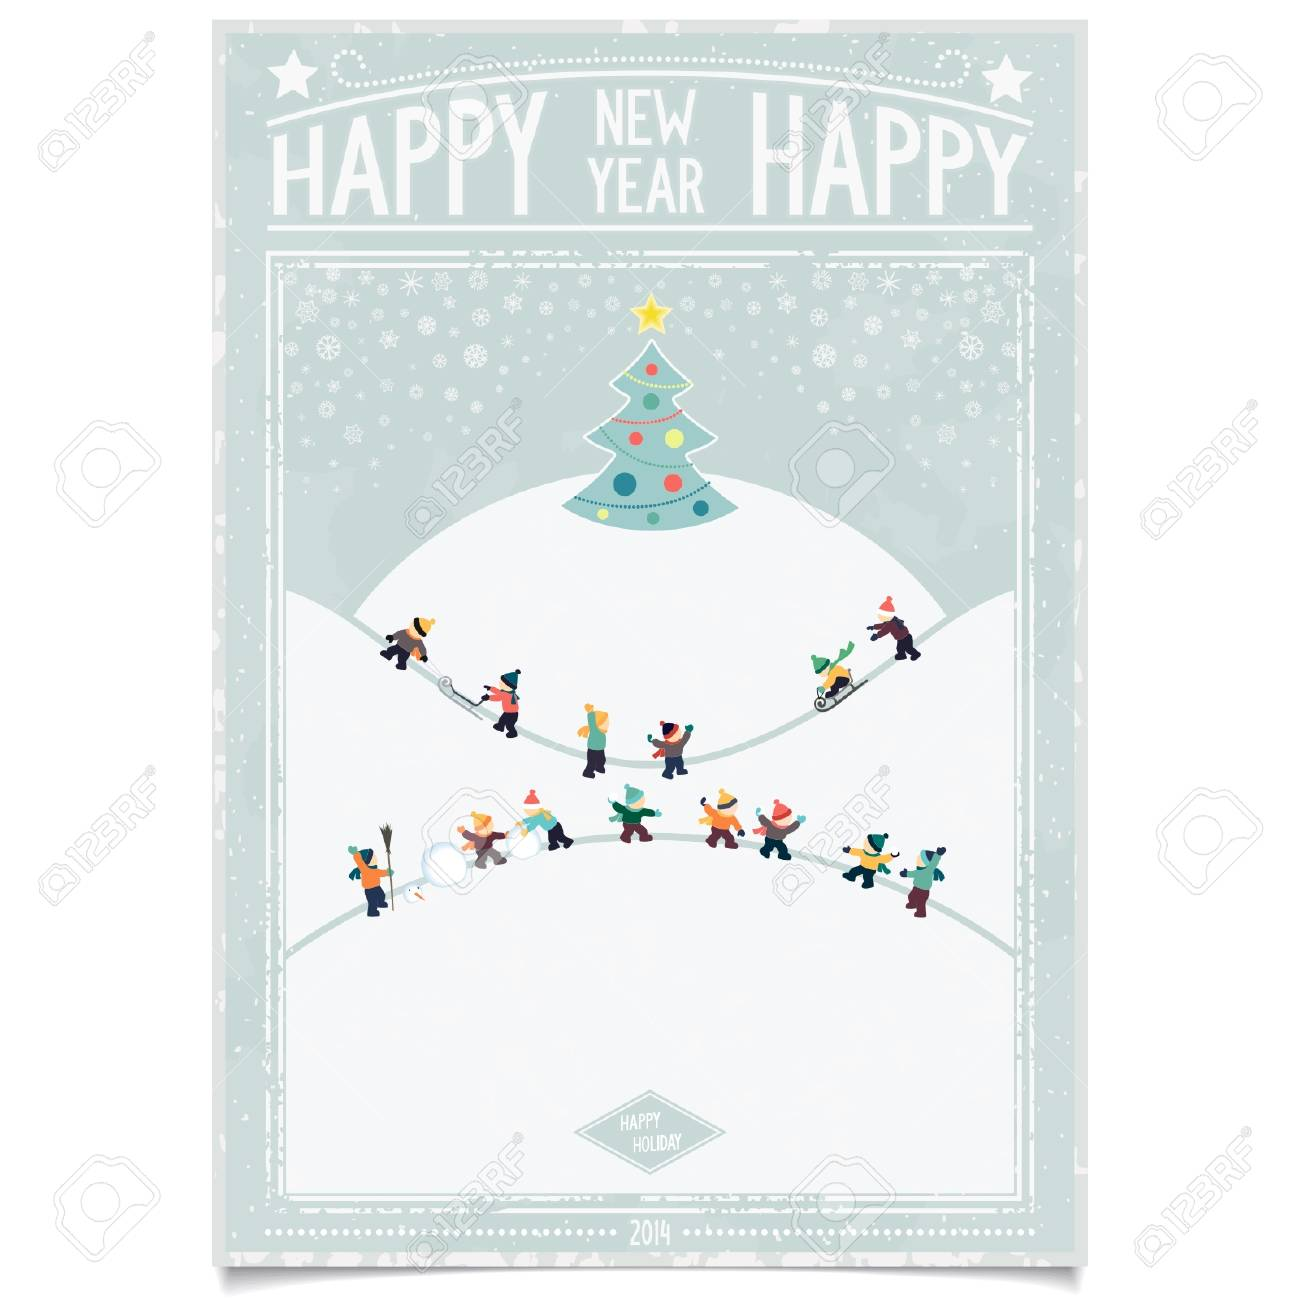 happy new year card winter landscape in retro poster style with playing kids and christmas tree